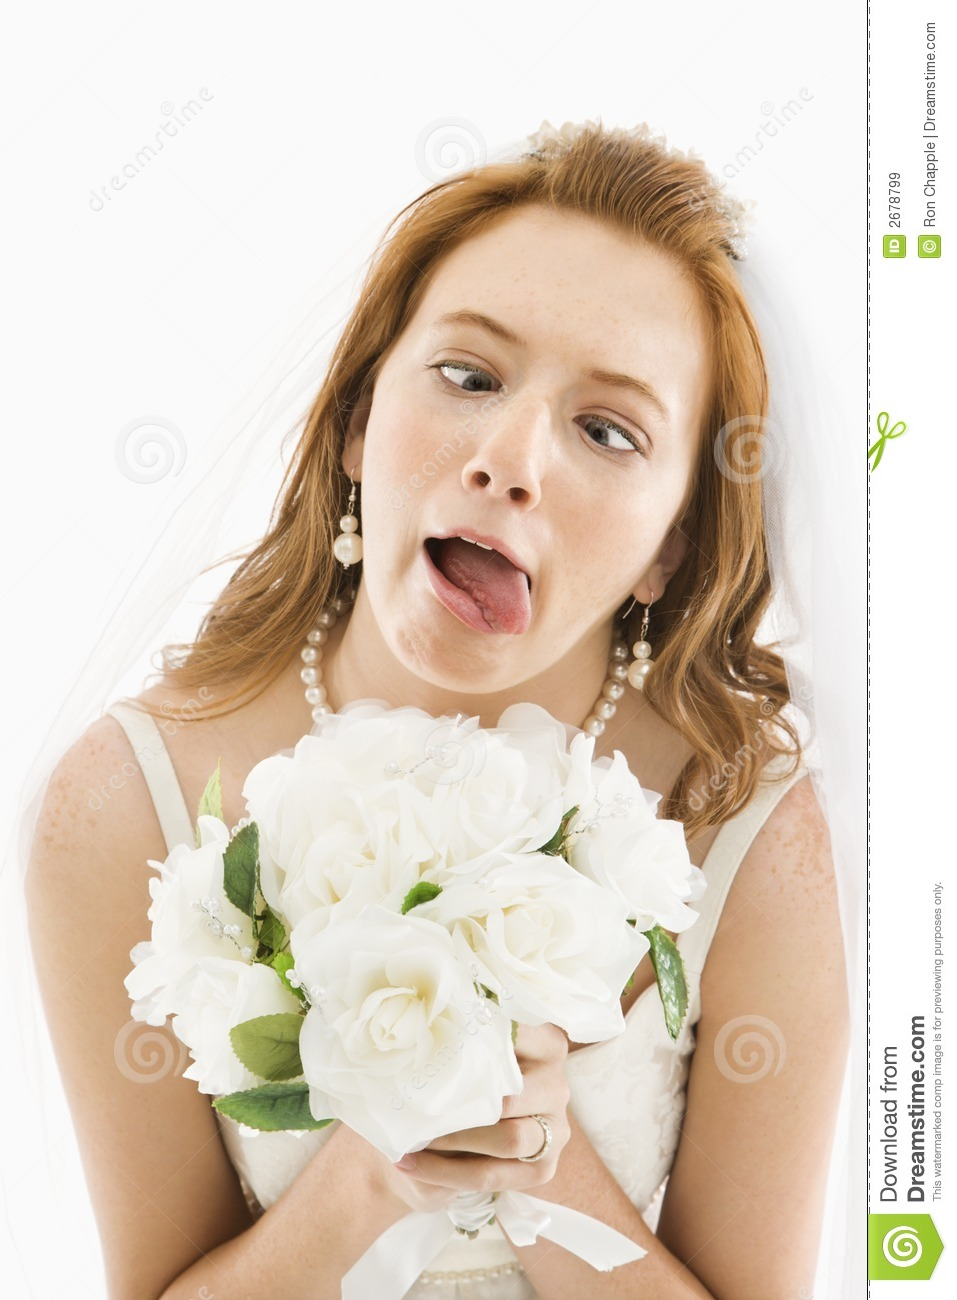 Funny Bridal Makeup : Bride Making Funny Face. Royalty Free Stock Images - Image ...